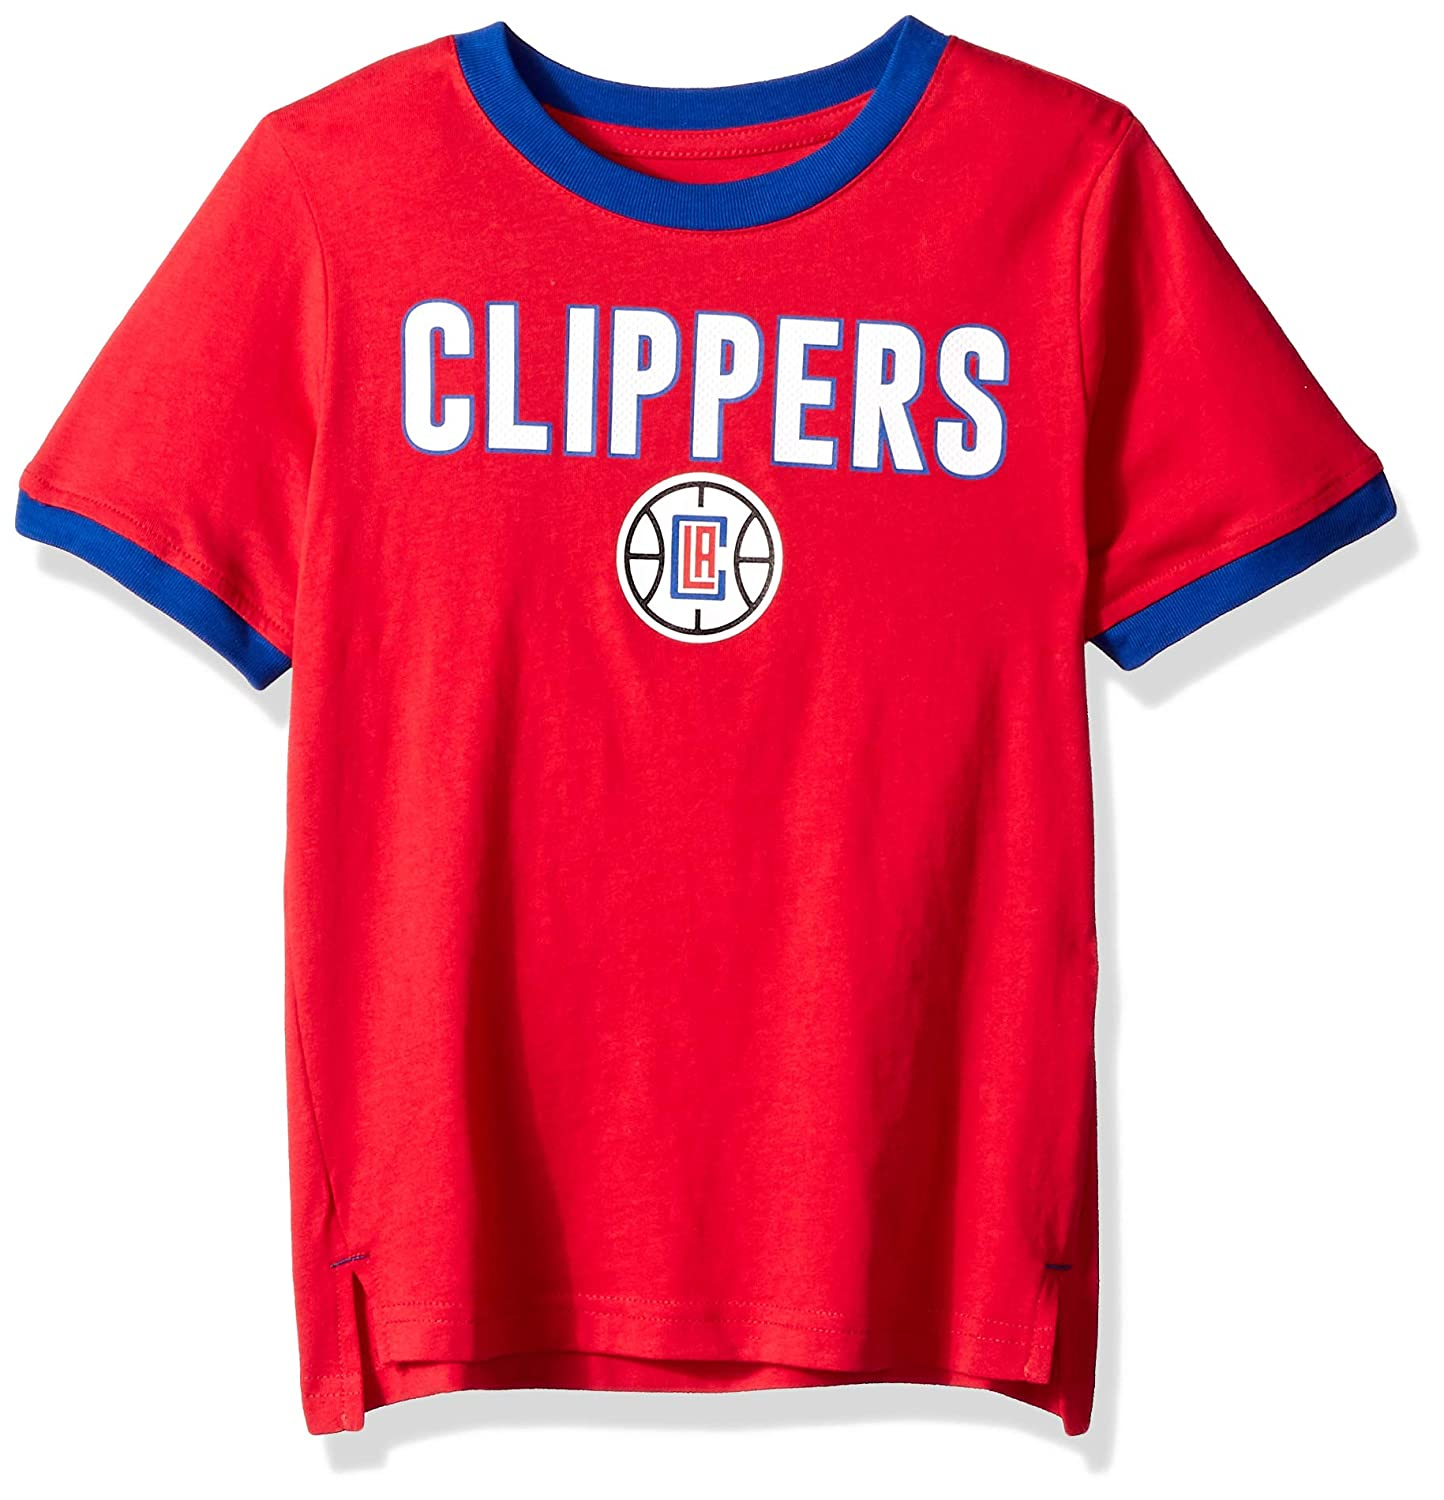 Outerstuff NBA NBA Kids /& Youth Boys Los Angeles Clippers Key Short Sleeve Fashion Tee Kids Large Red 7